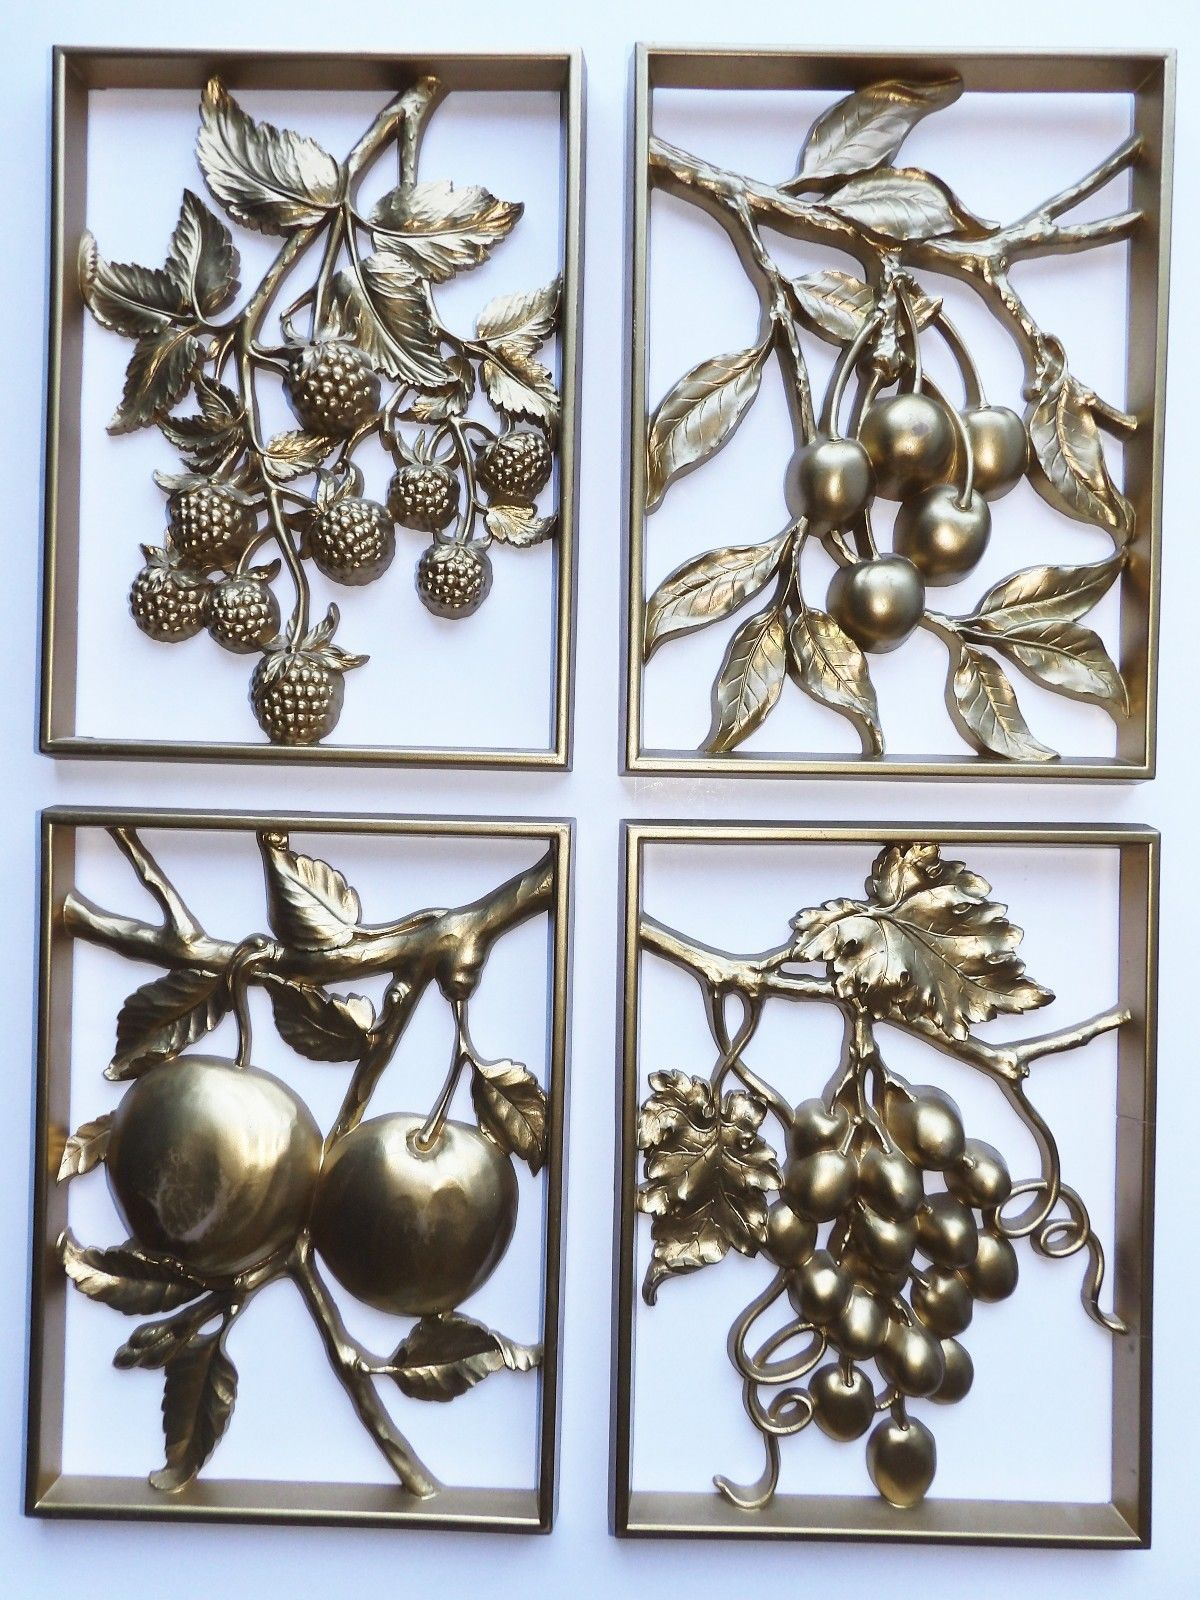 GOLD FRUIT WALL PLAQUES SYROCO RAISED 3-D  SET OF 4 VINTAGE